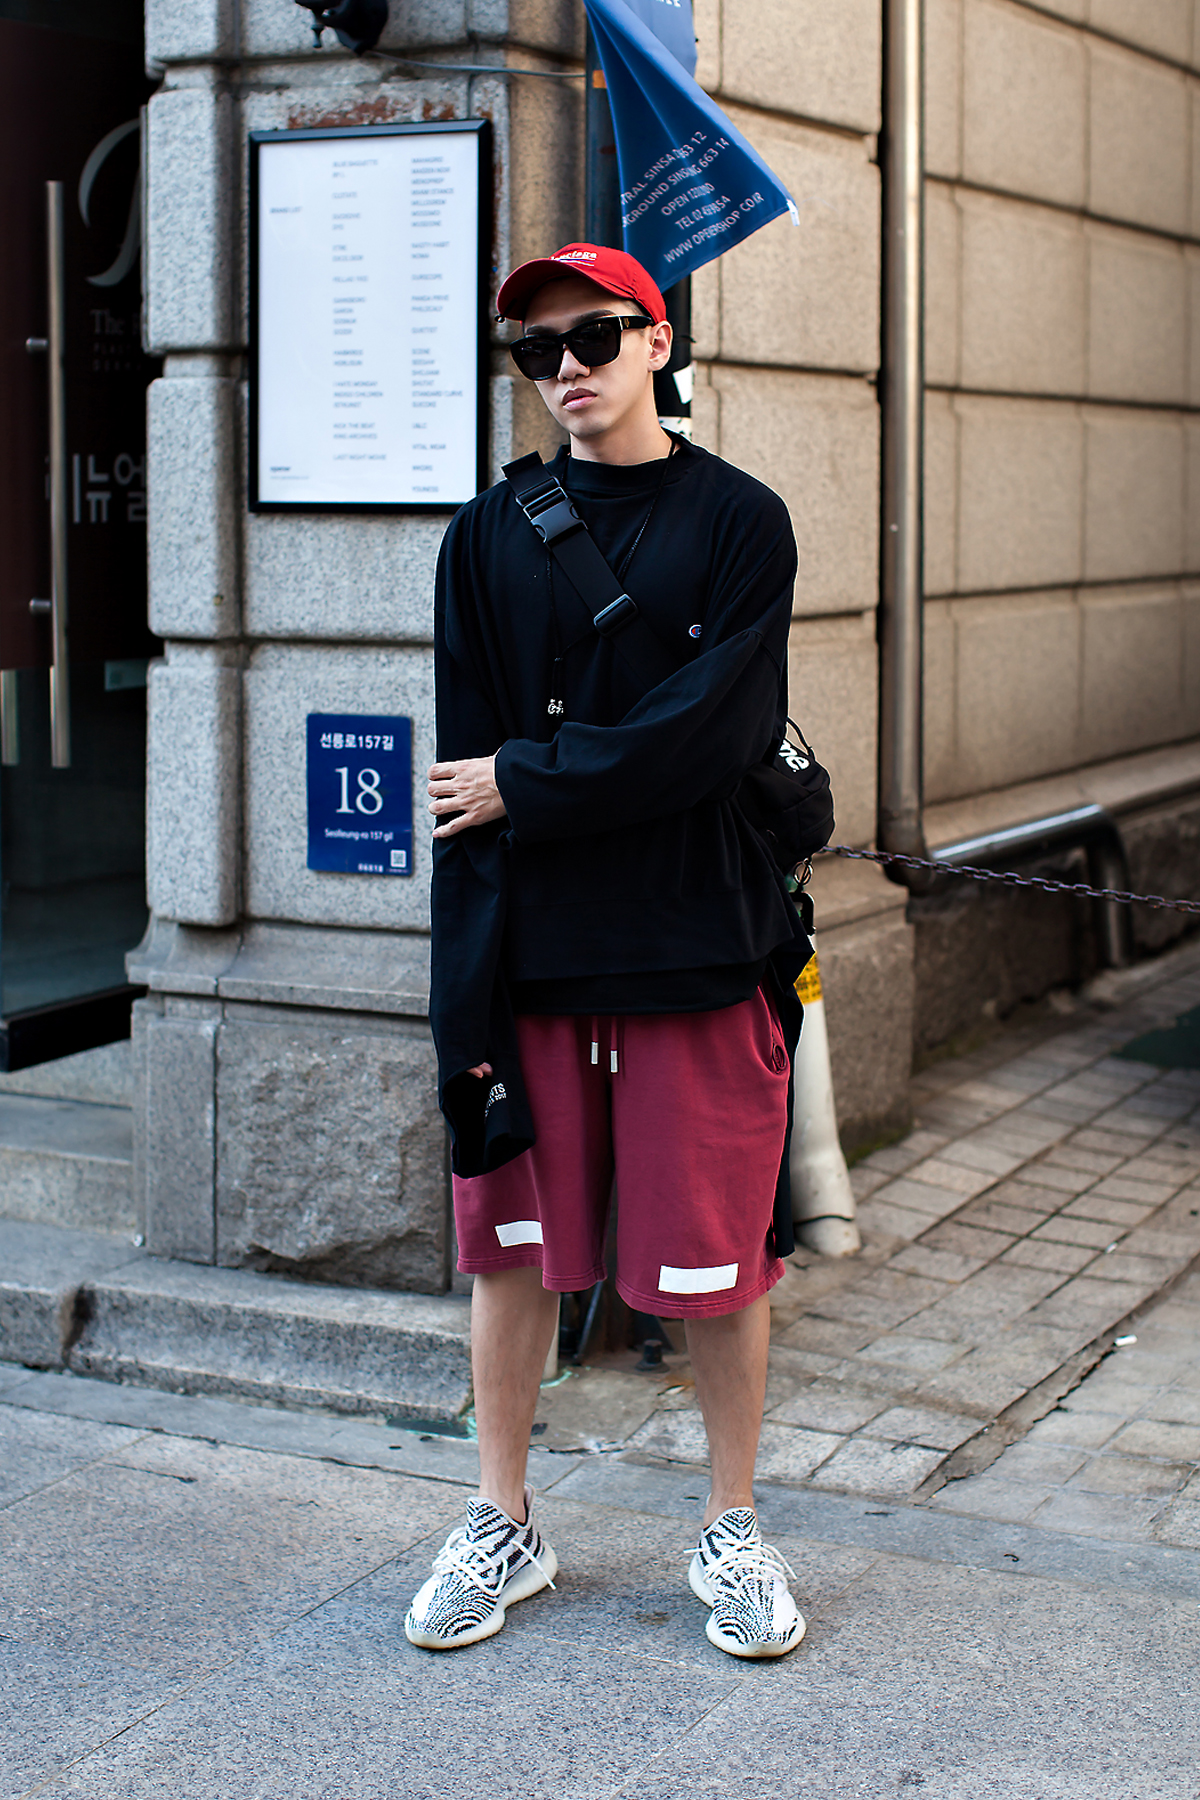 Travis chen, Street Fashion 2017 in Seoul.jpg